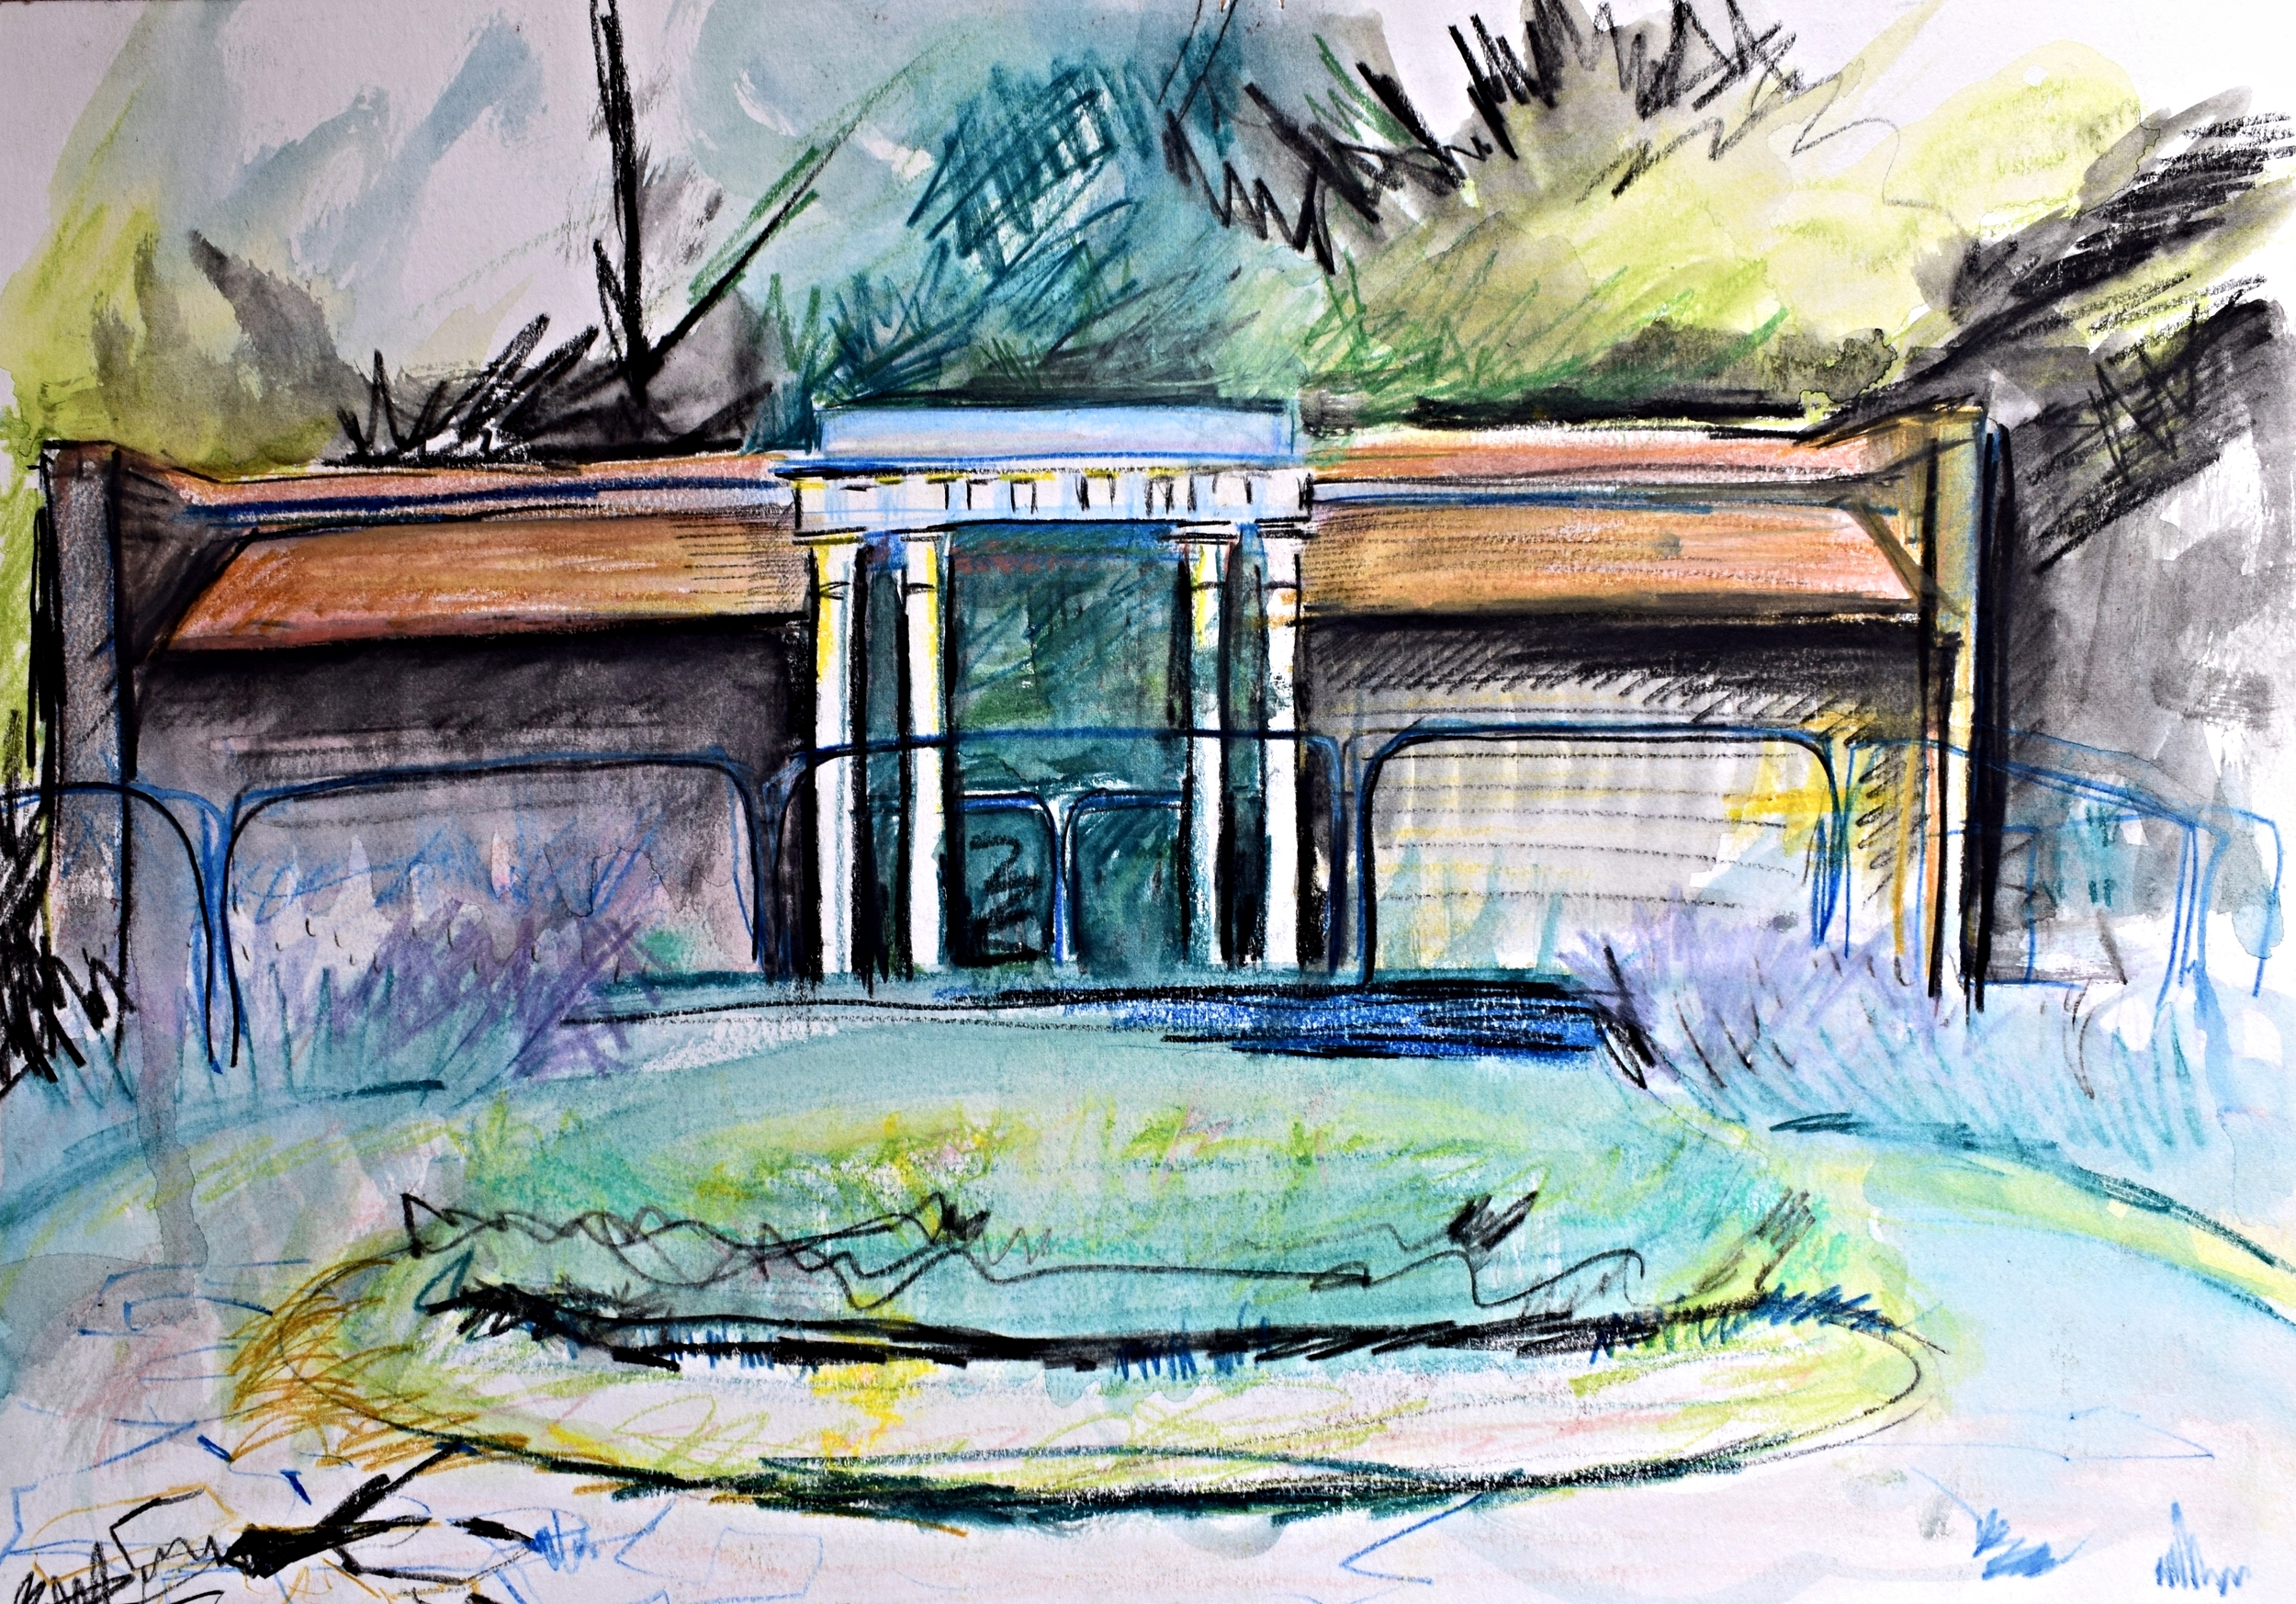 RUSKIN PARK: coloured pencil on paper